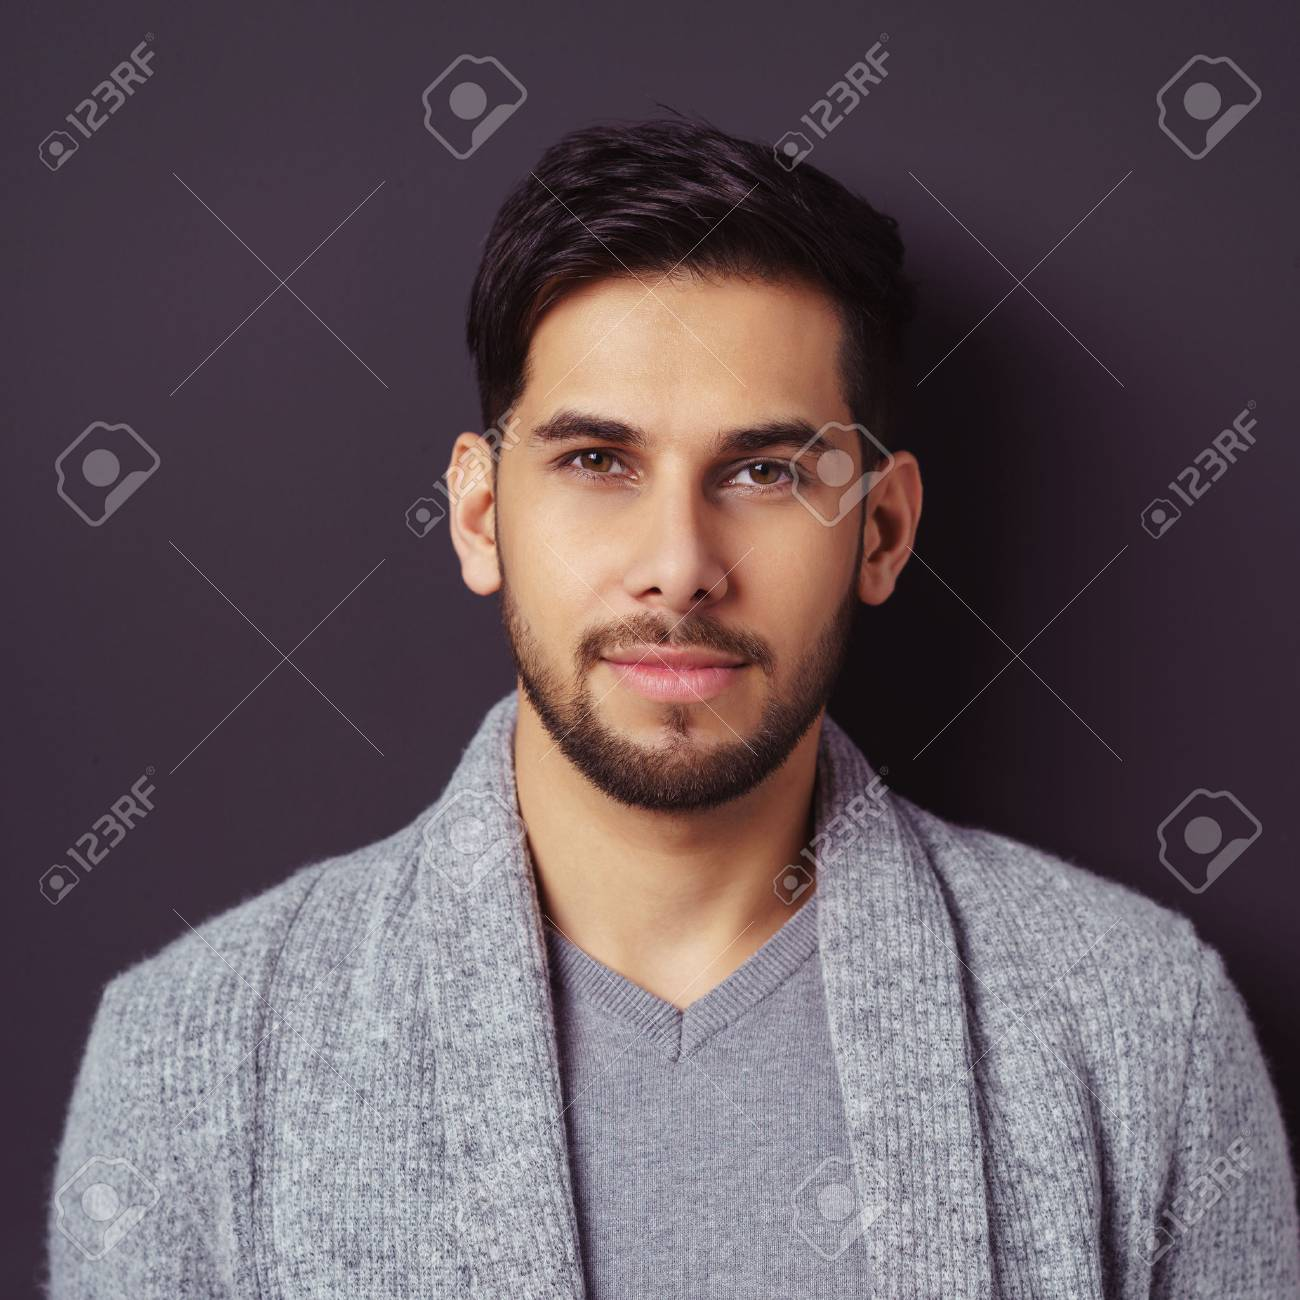 Thoughtful handsome bearded young man staring pensively at the camera in a stylish grey sweater and top, closeup head and shoulders square format - 61146943